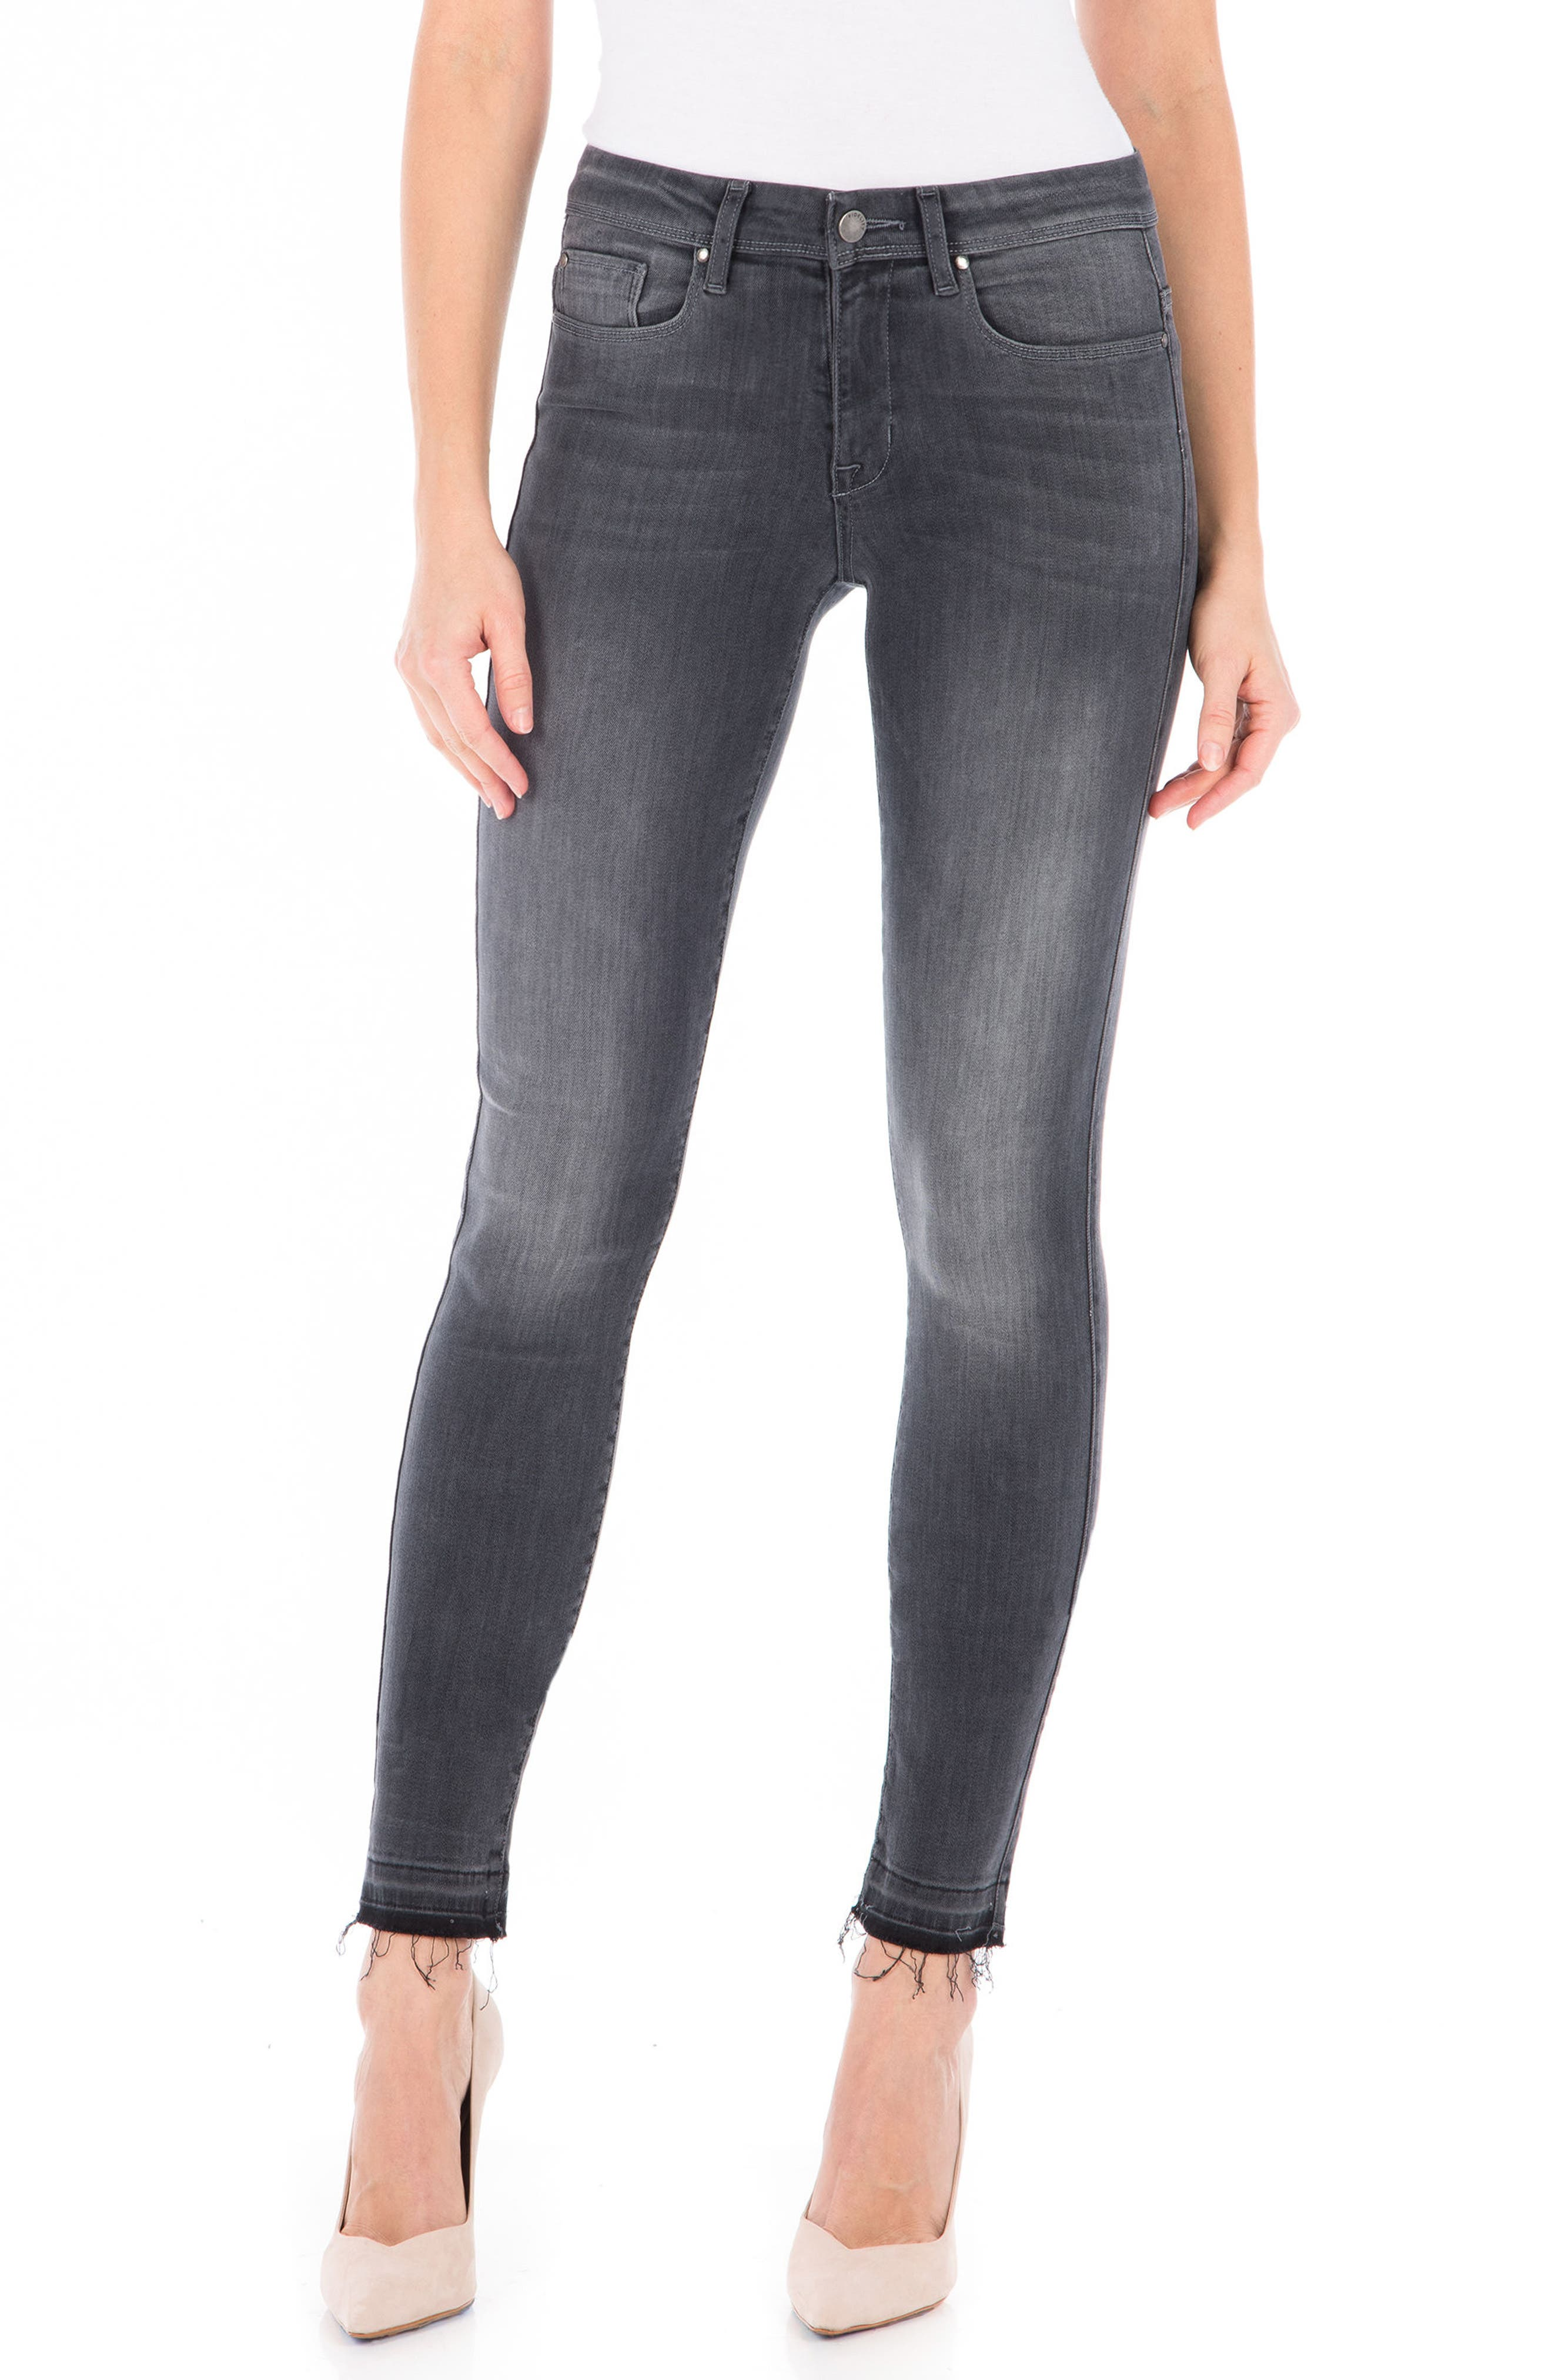 Gwen High Waist Skinny Jeans,                         Main,                         color, 001